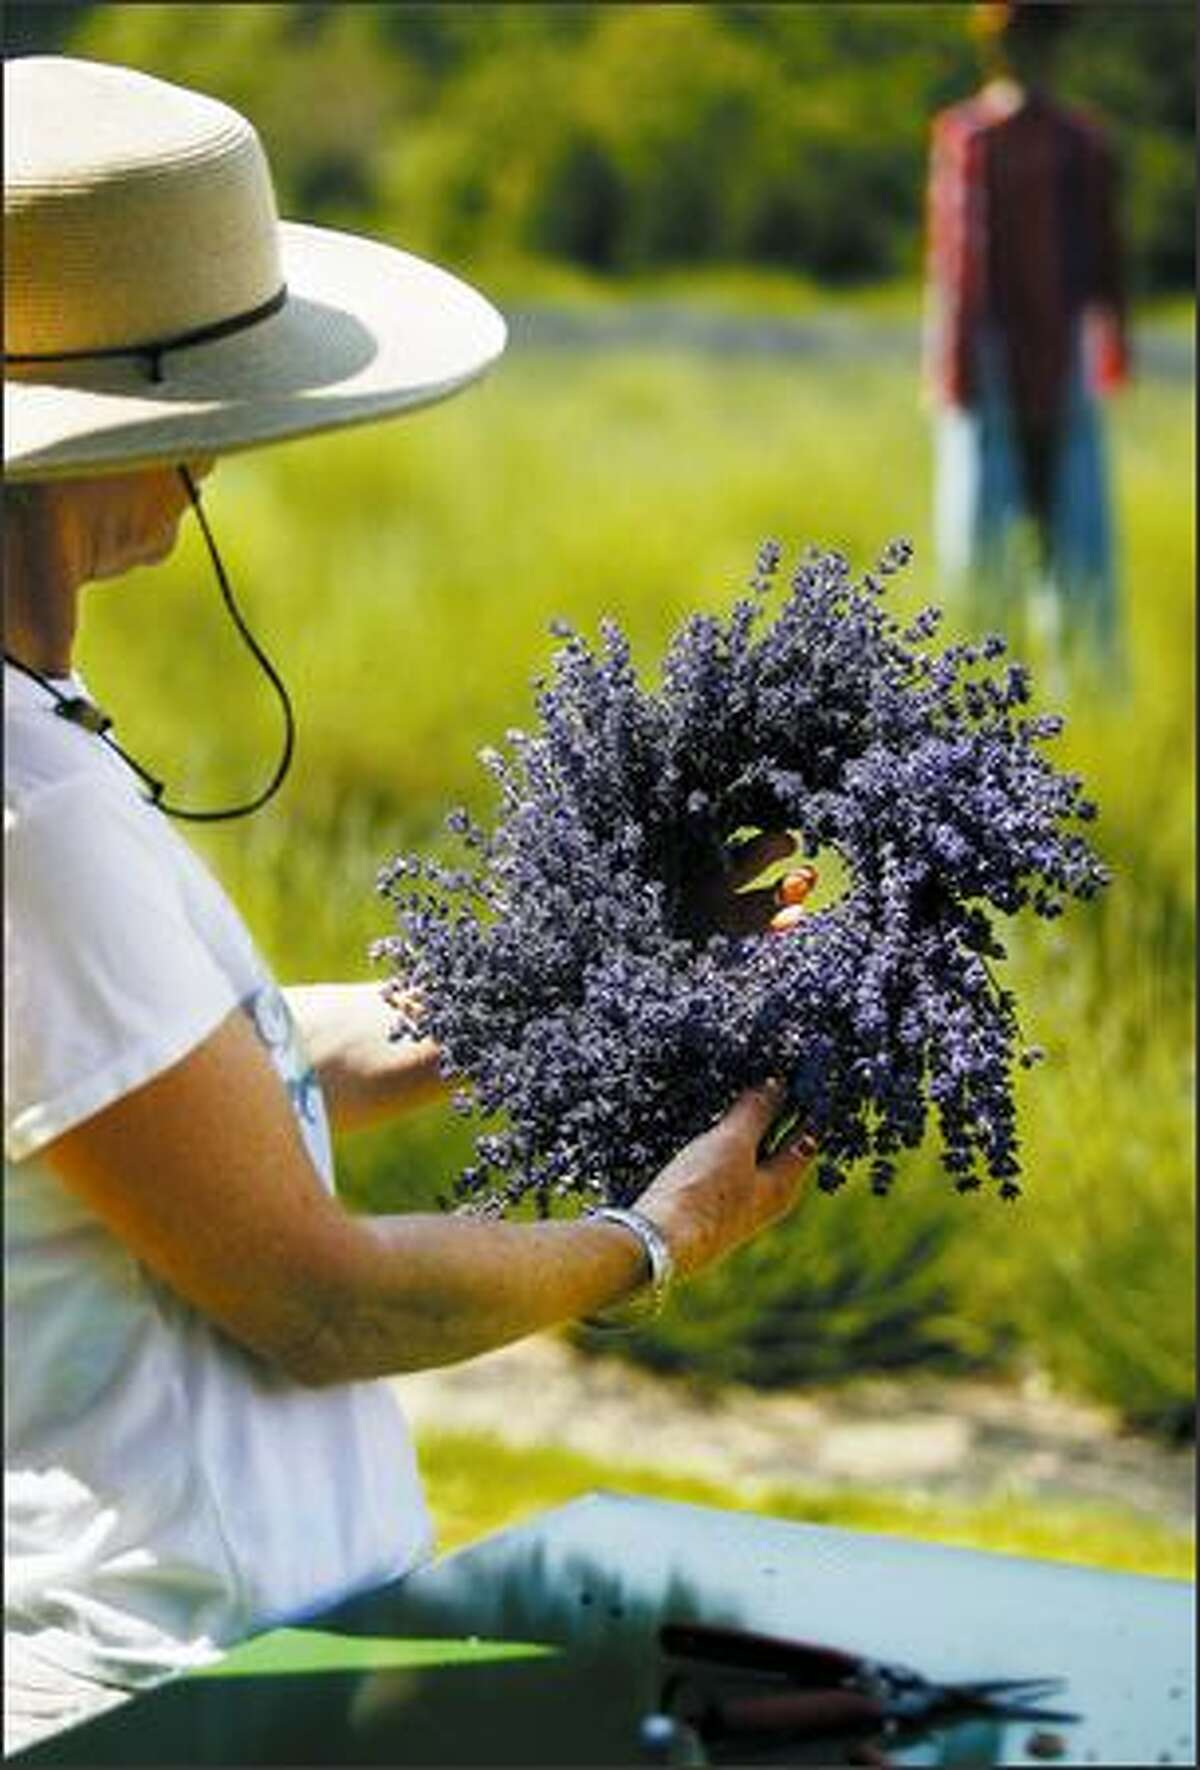 Chris Shuman inspects a lavender wreath she and Linda Hill were making at Cyndi Johnson's Fox Farm.